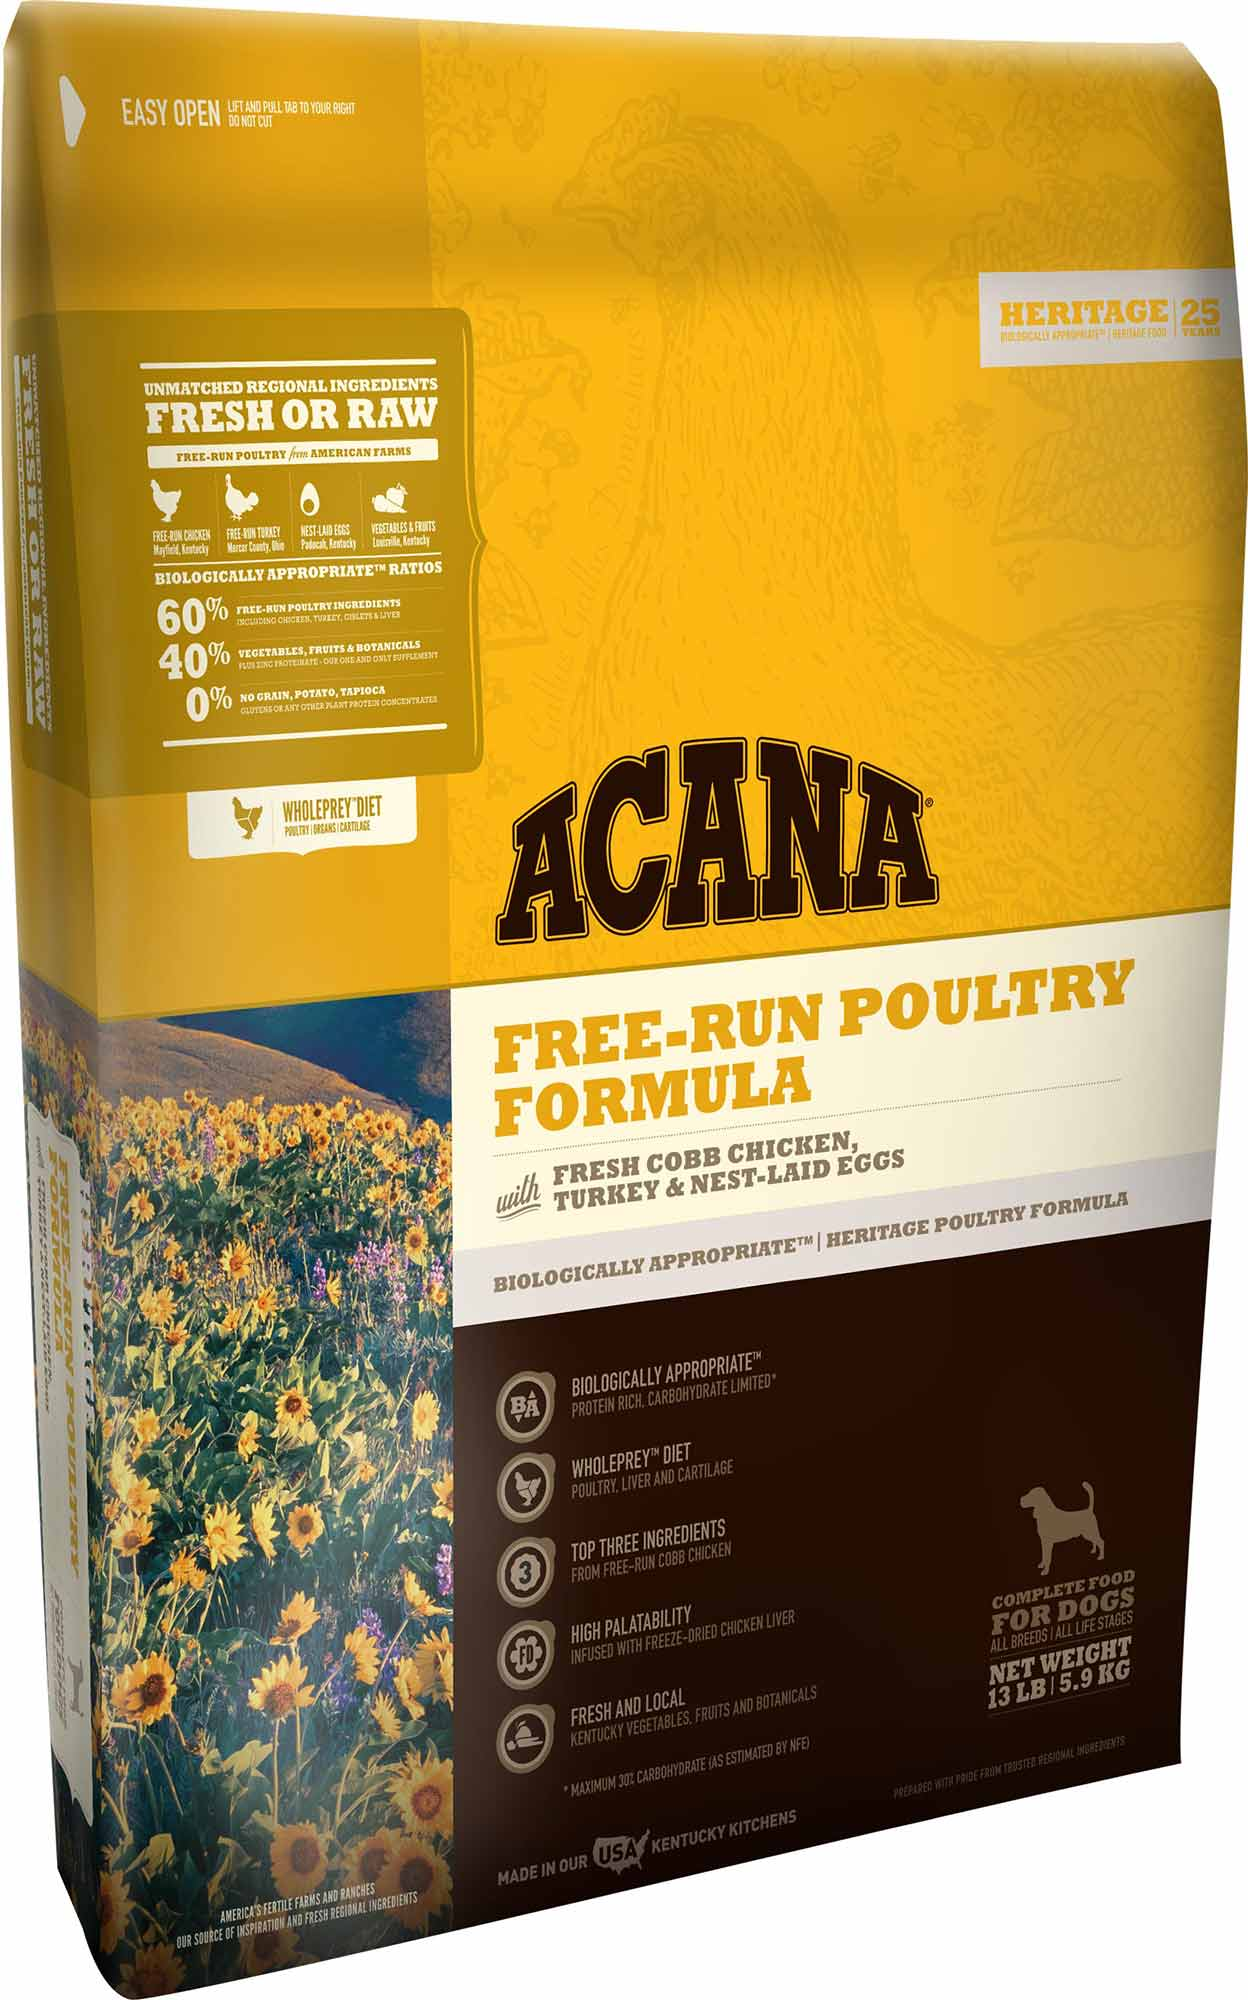 ACANA HERITAGE POULTRY 25LB